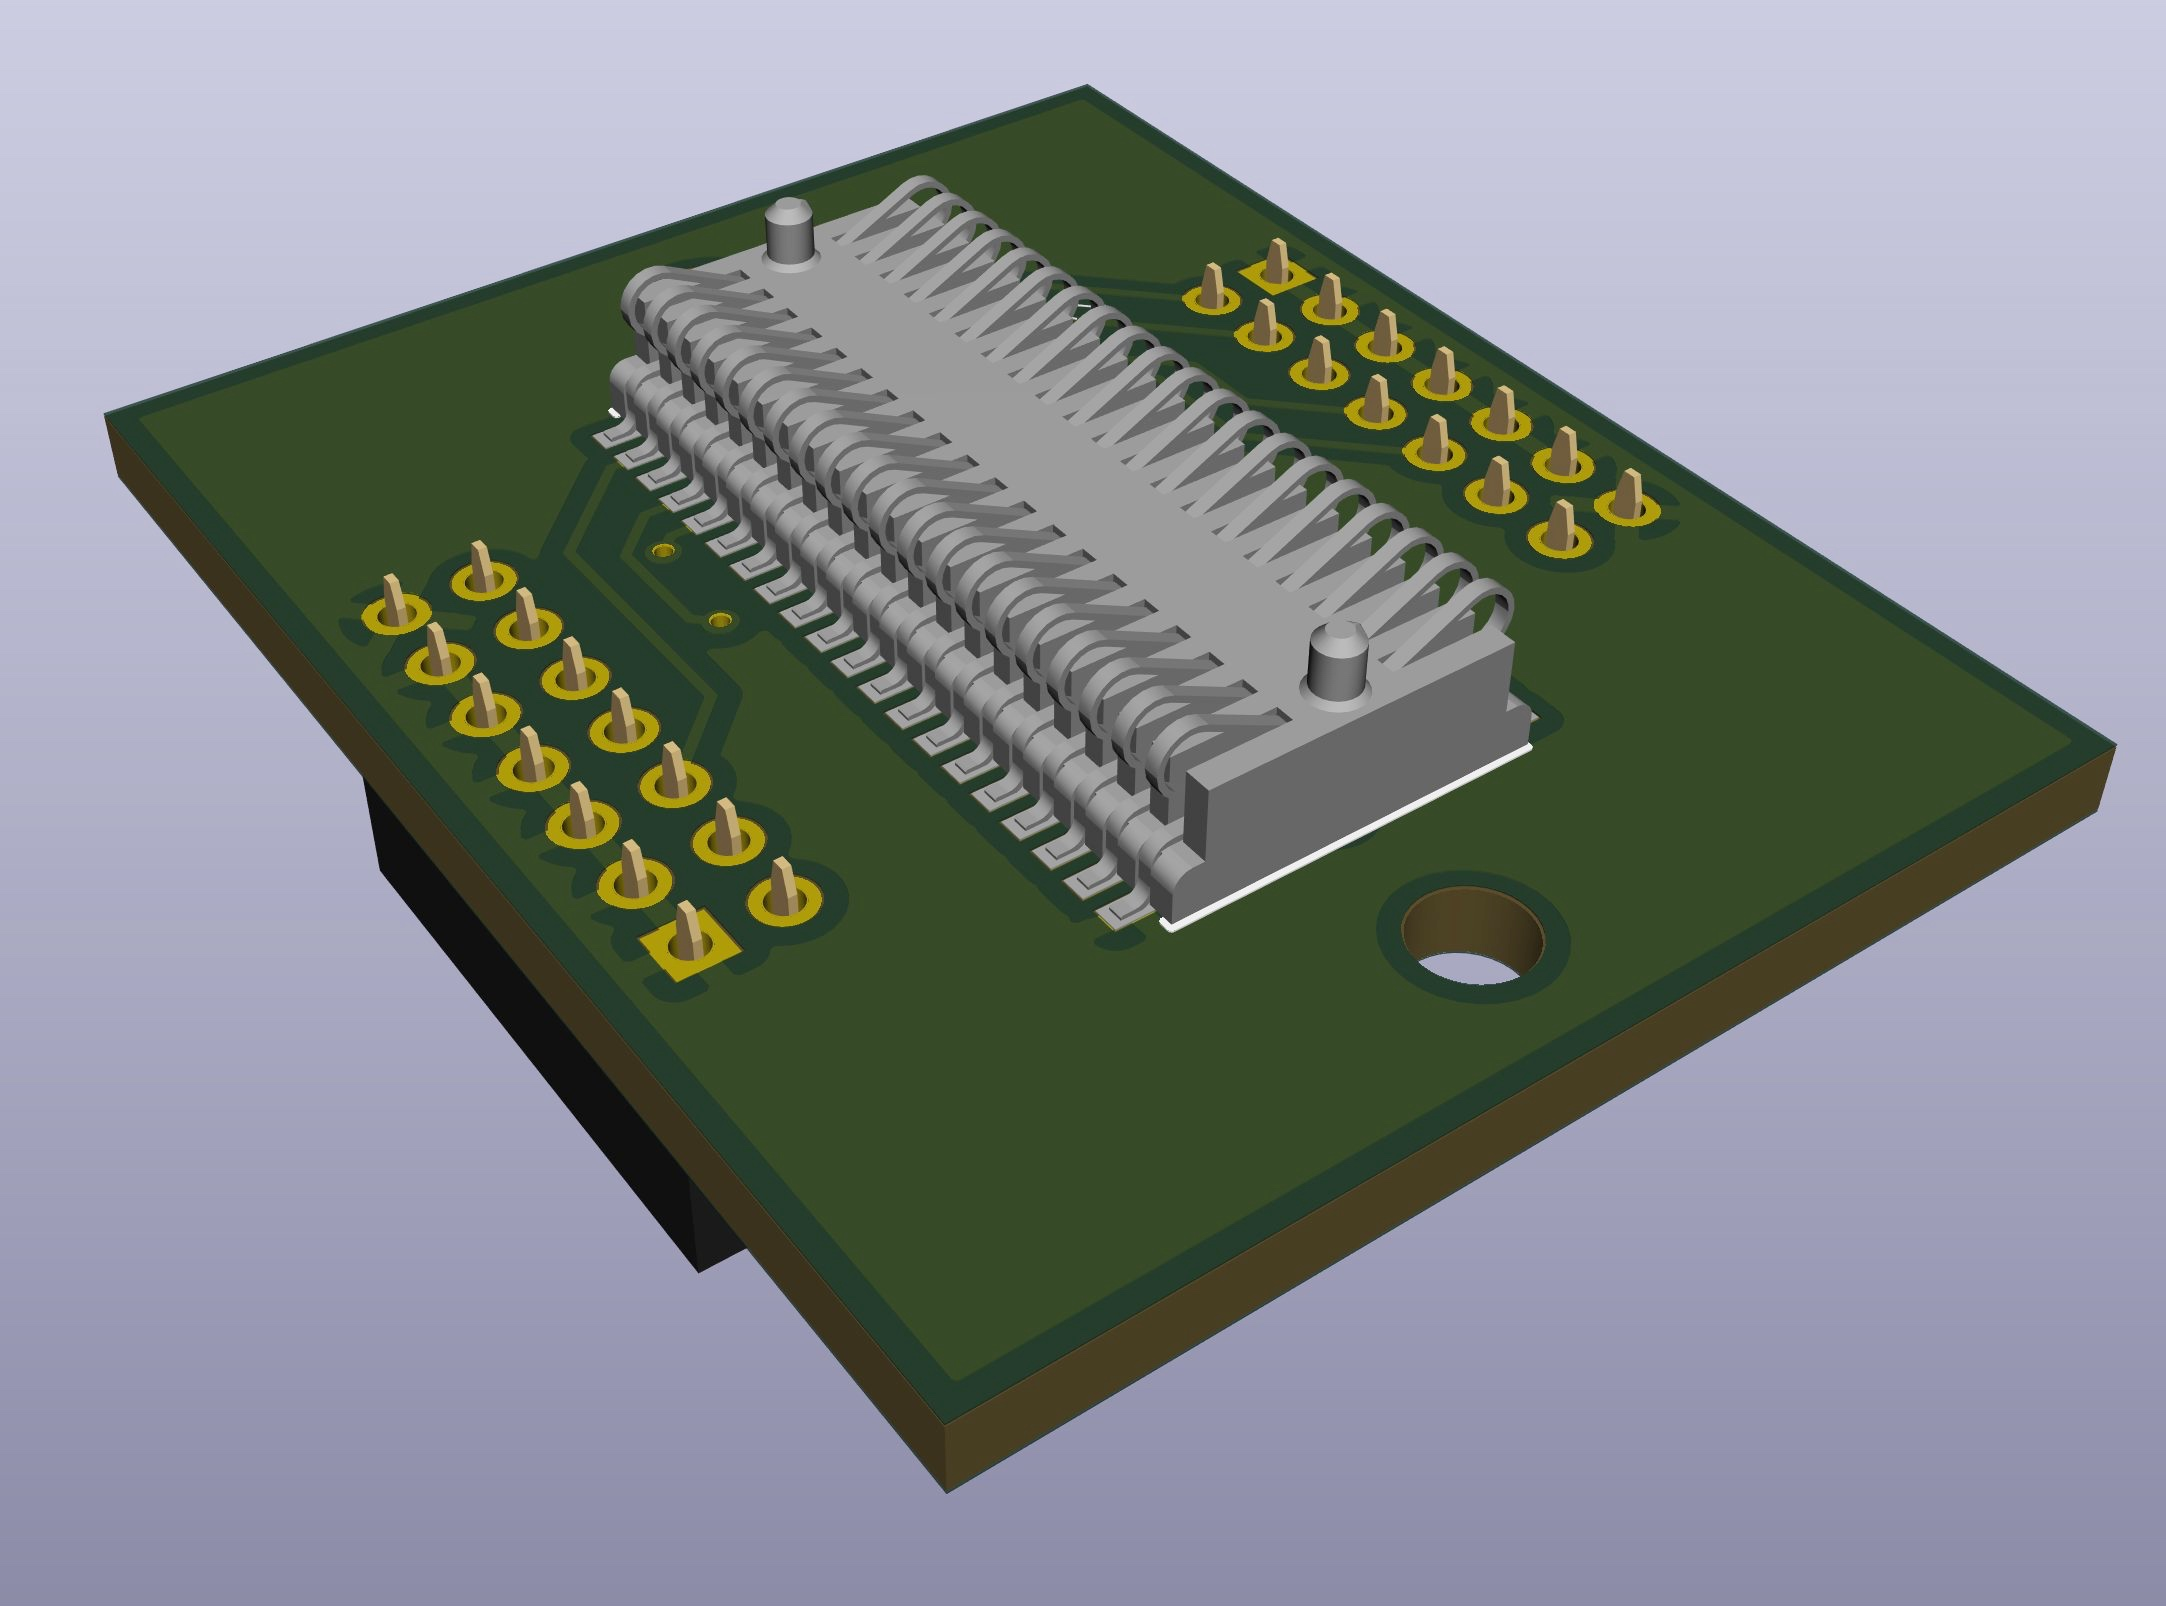 3D rendering of my JTAG adapter board